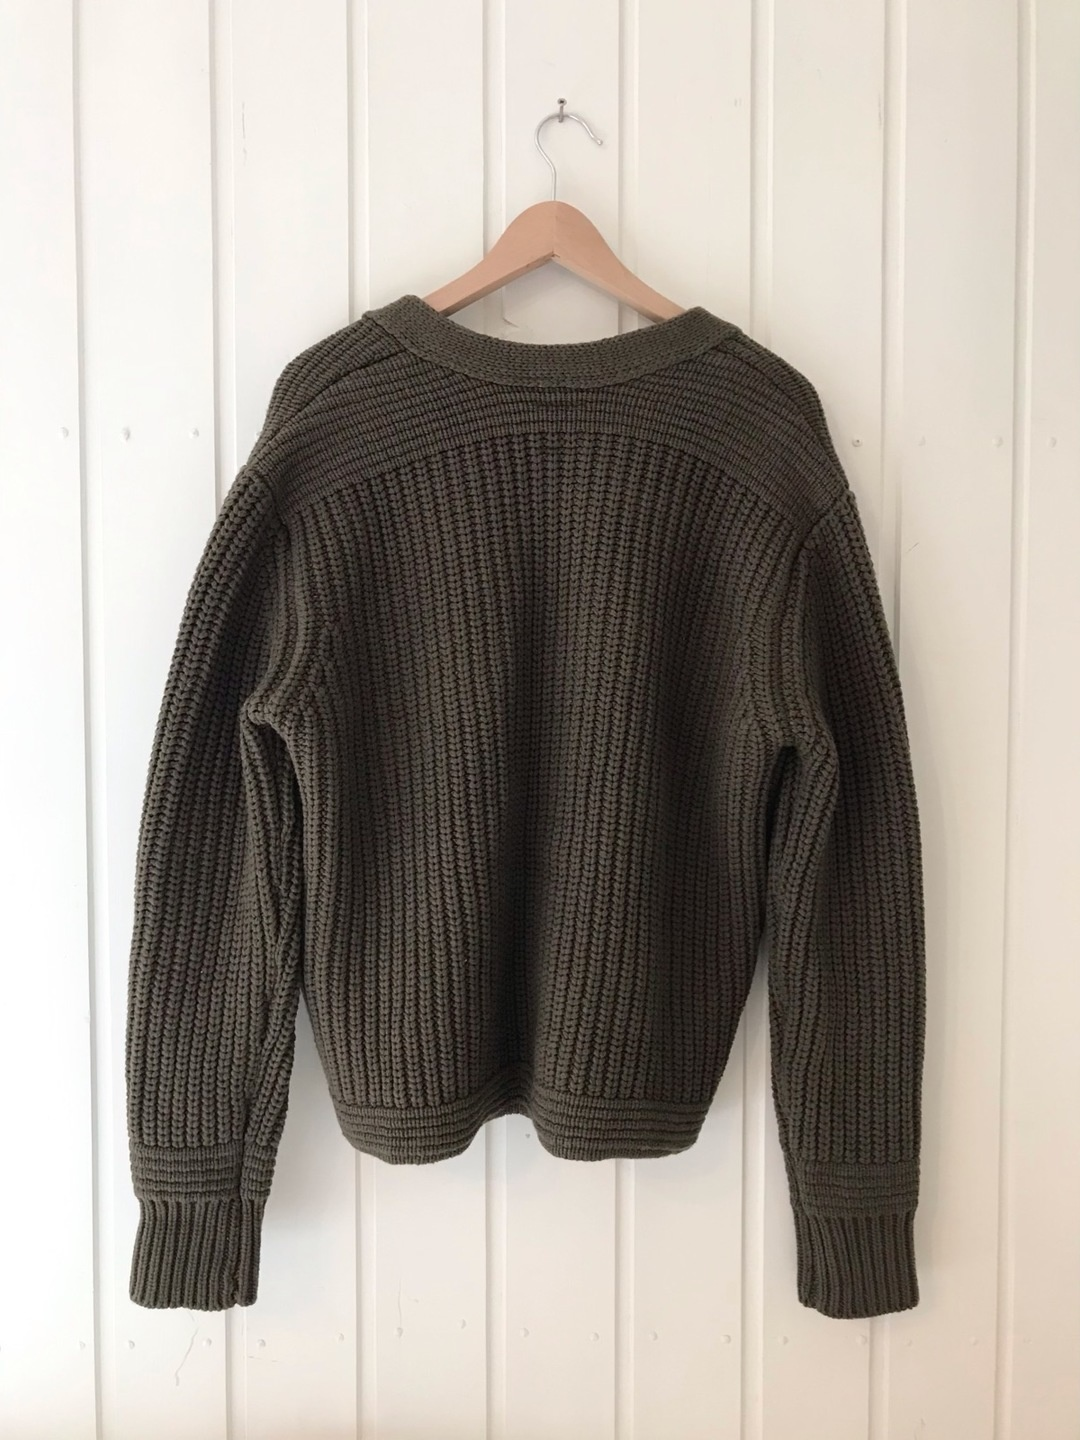 Women's jumpers & cardigans - PREMIUM H&M photo 3